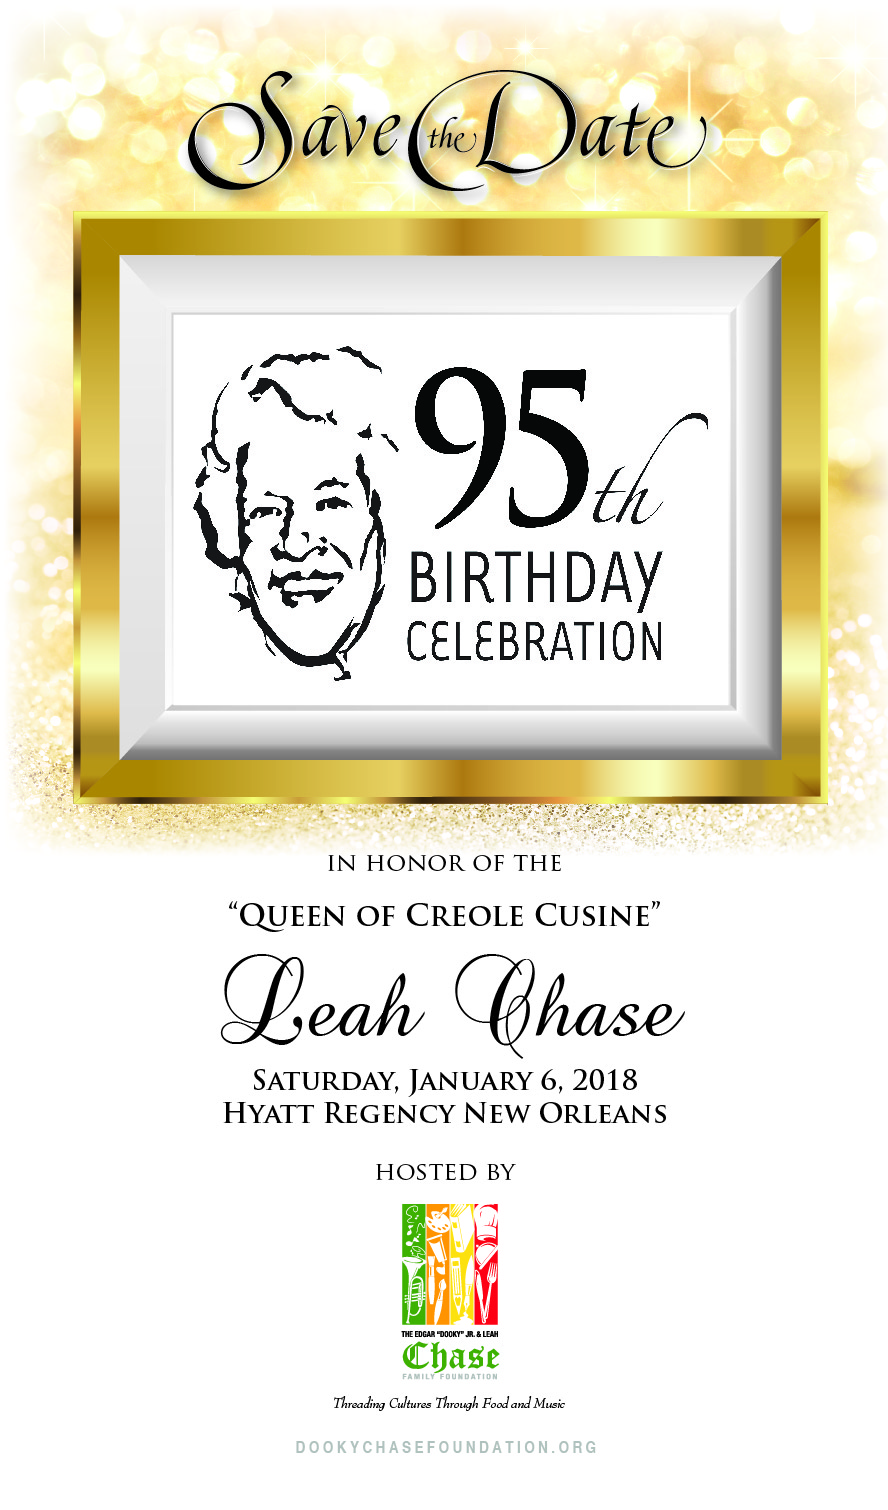 Leah Chase Save Date 95th-01